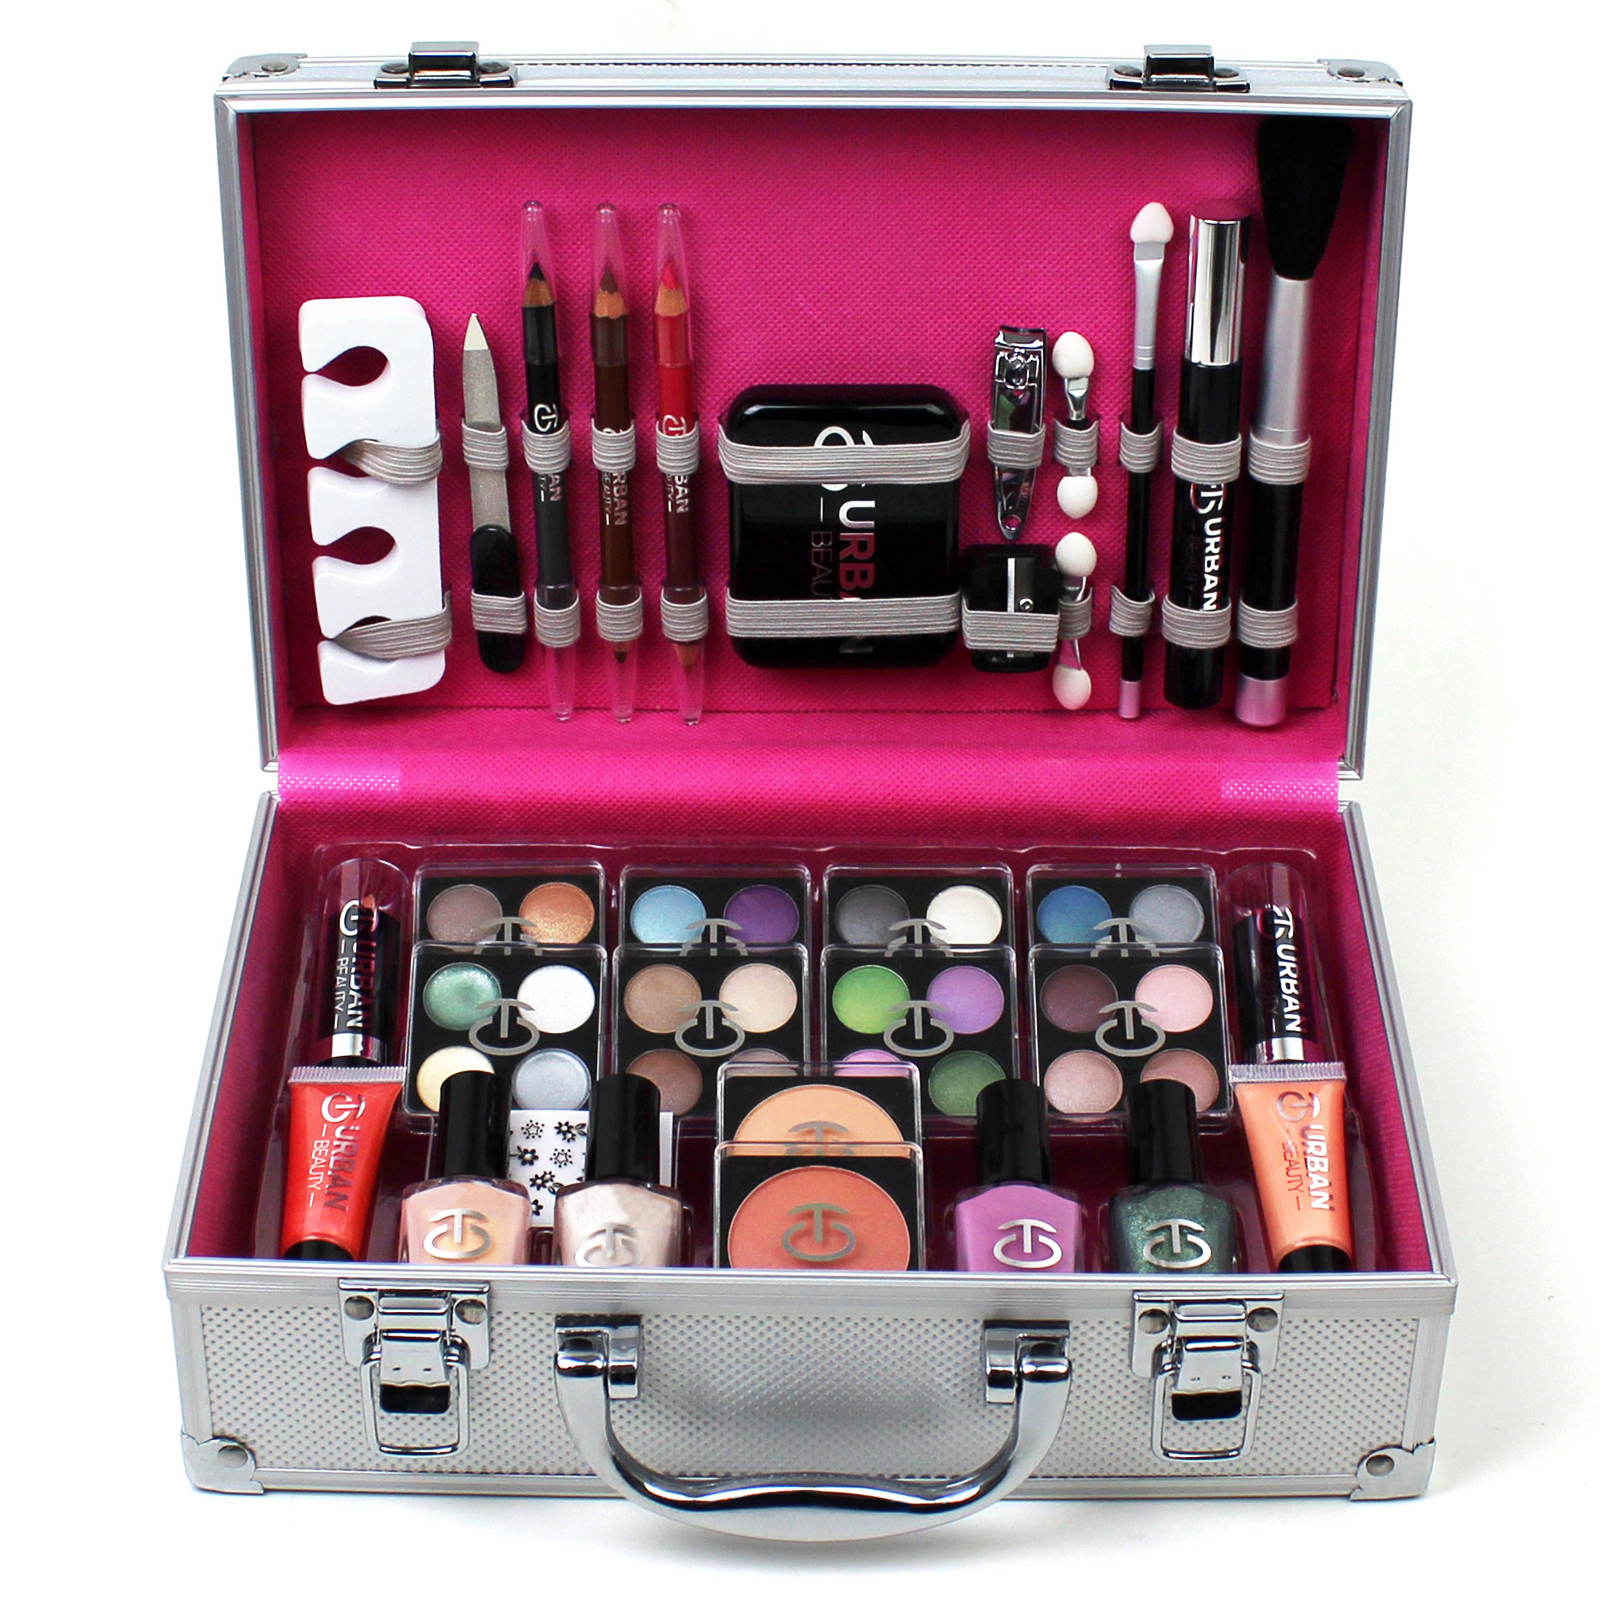 vanity case cosmetic make up urban beauty box travel carry gift storage 60 piece ebay. Black Bedroom Furniture Sets. Home Design Ideas